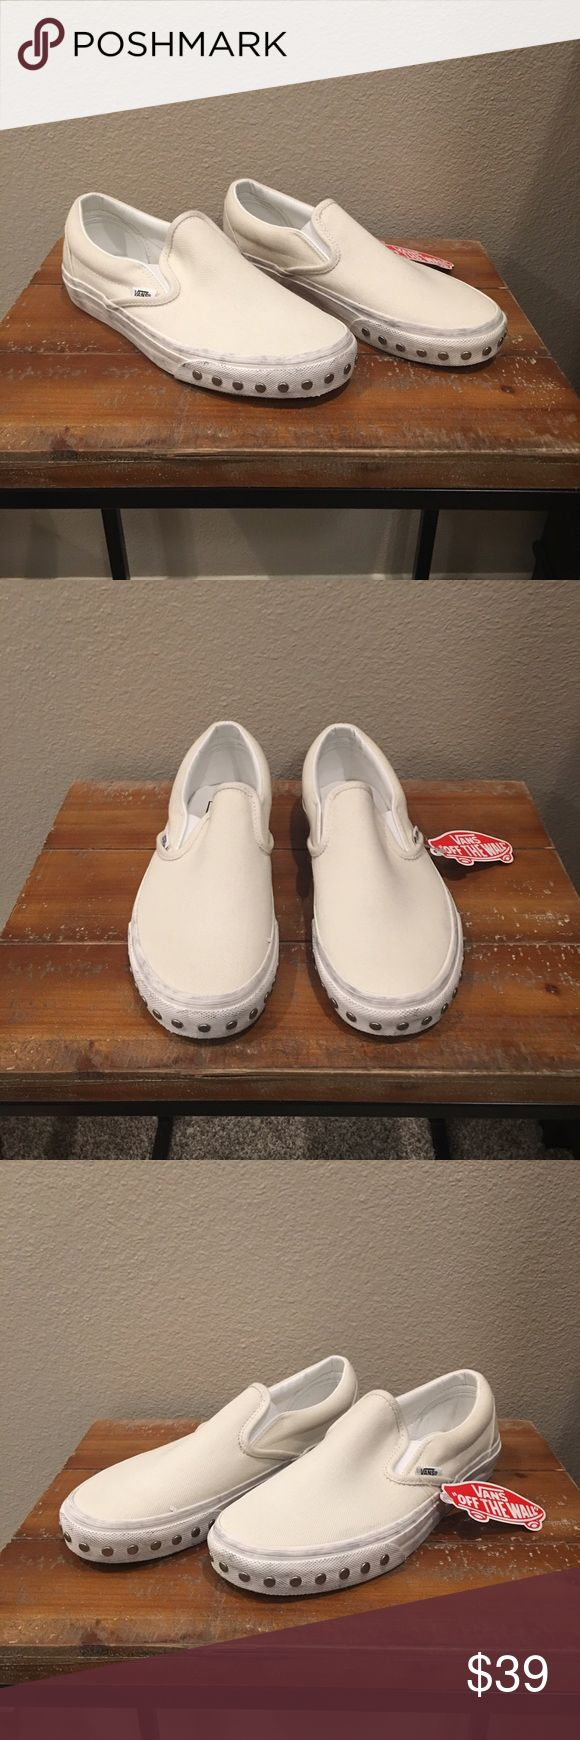 White Overwashed Classic Slip On Studded Vans New with box. MY FAVORITE VANS! I have two pairs of these. I wear them a lot because they're super rad and they go with everything🙌🏼 Selling some of my backstock. Lucky you. They are supposed to look scuffed on the white walls. Gives them a vintage look👌🏼 Silver studs on the white walls add a super special element. They are machine washable...no dryer. No longer in stores. Get them while they last! 😊💯 Vans Shoes Sneakers